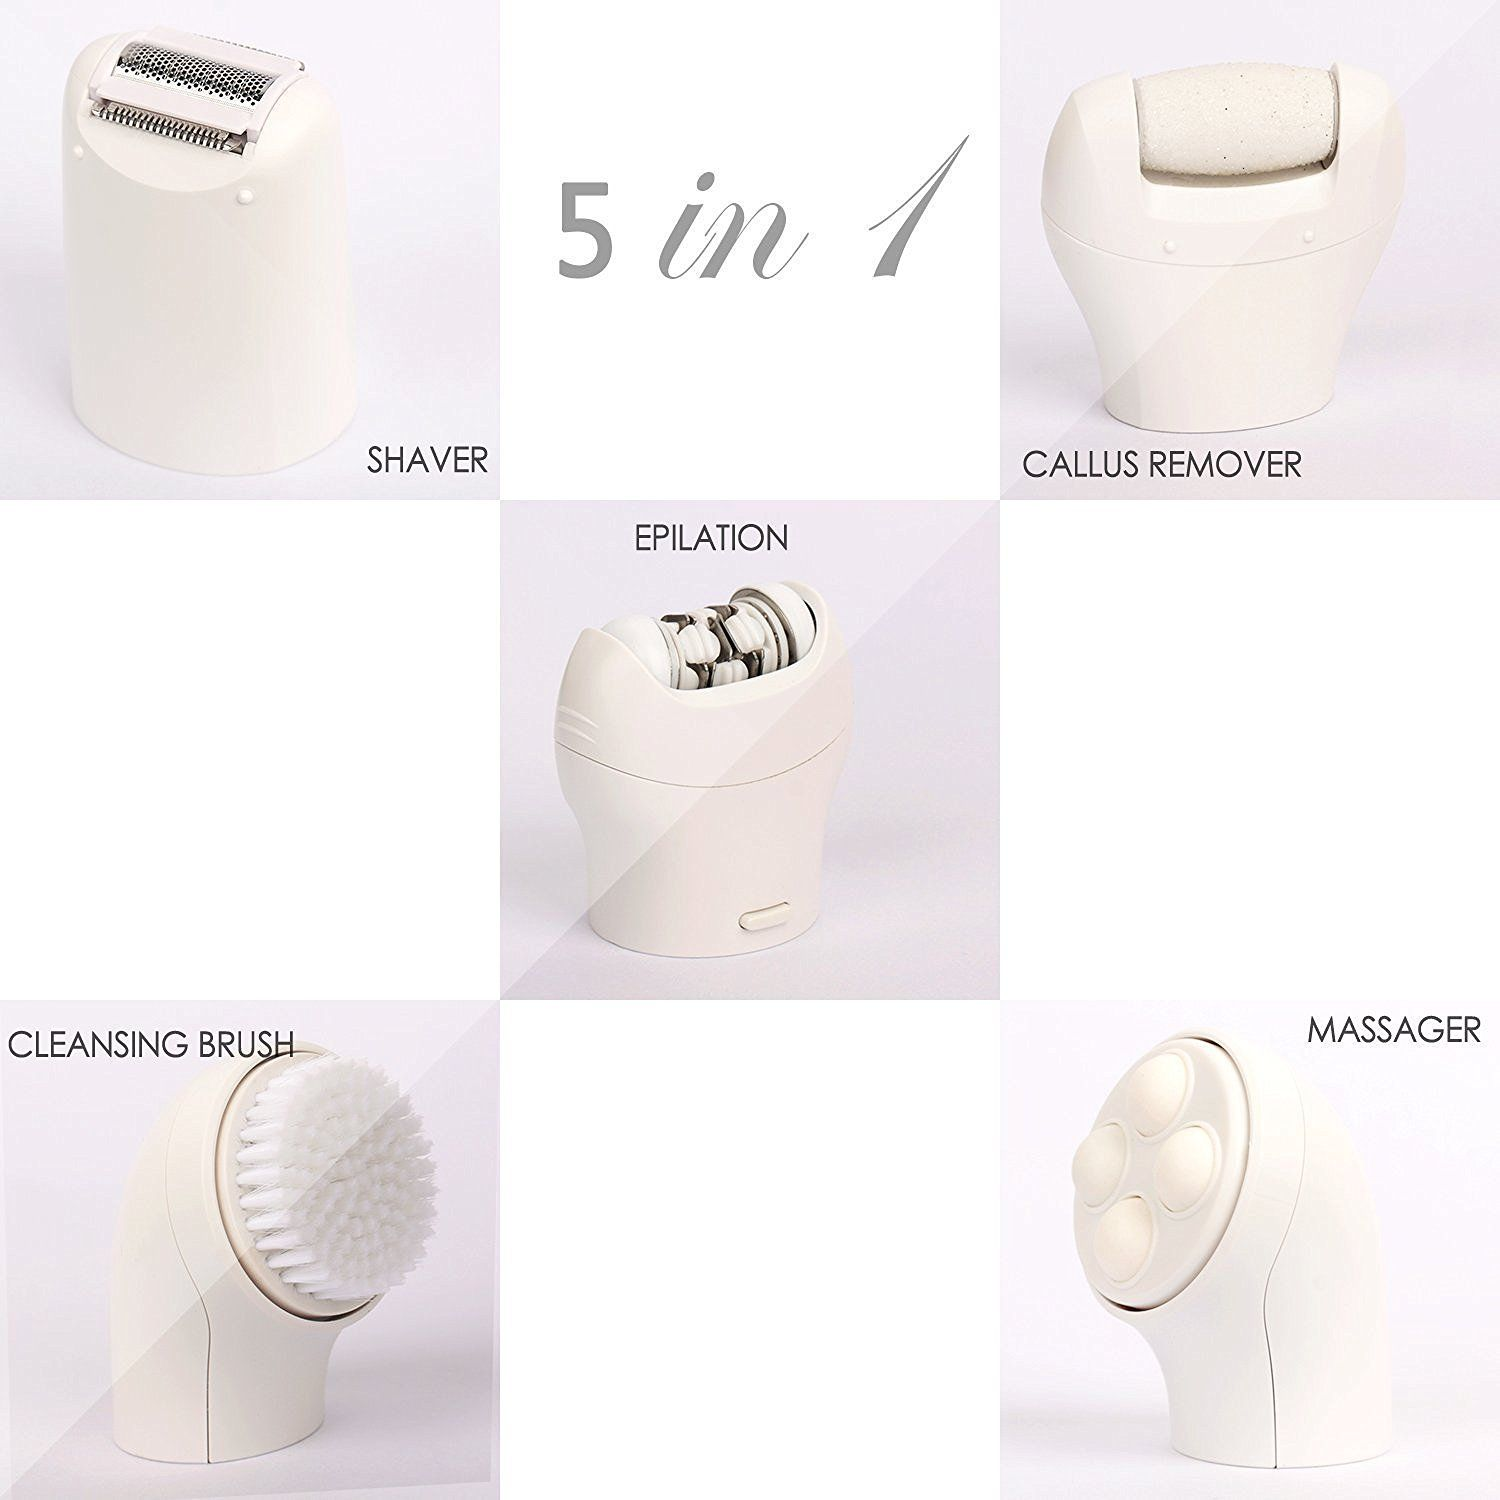 hangsun-epilator-for-bikini-trimming-accessories